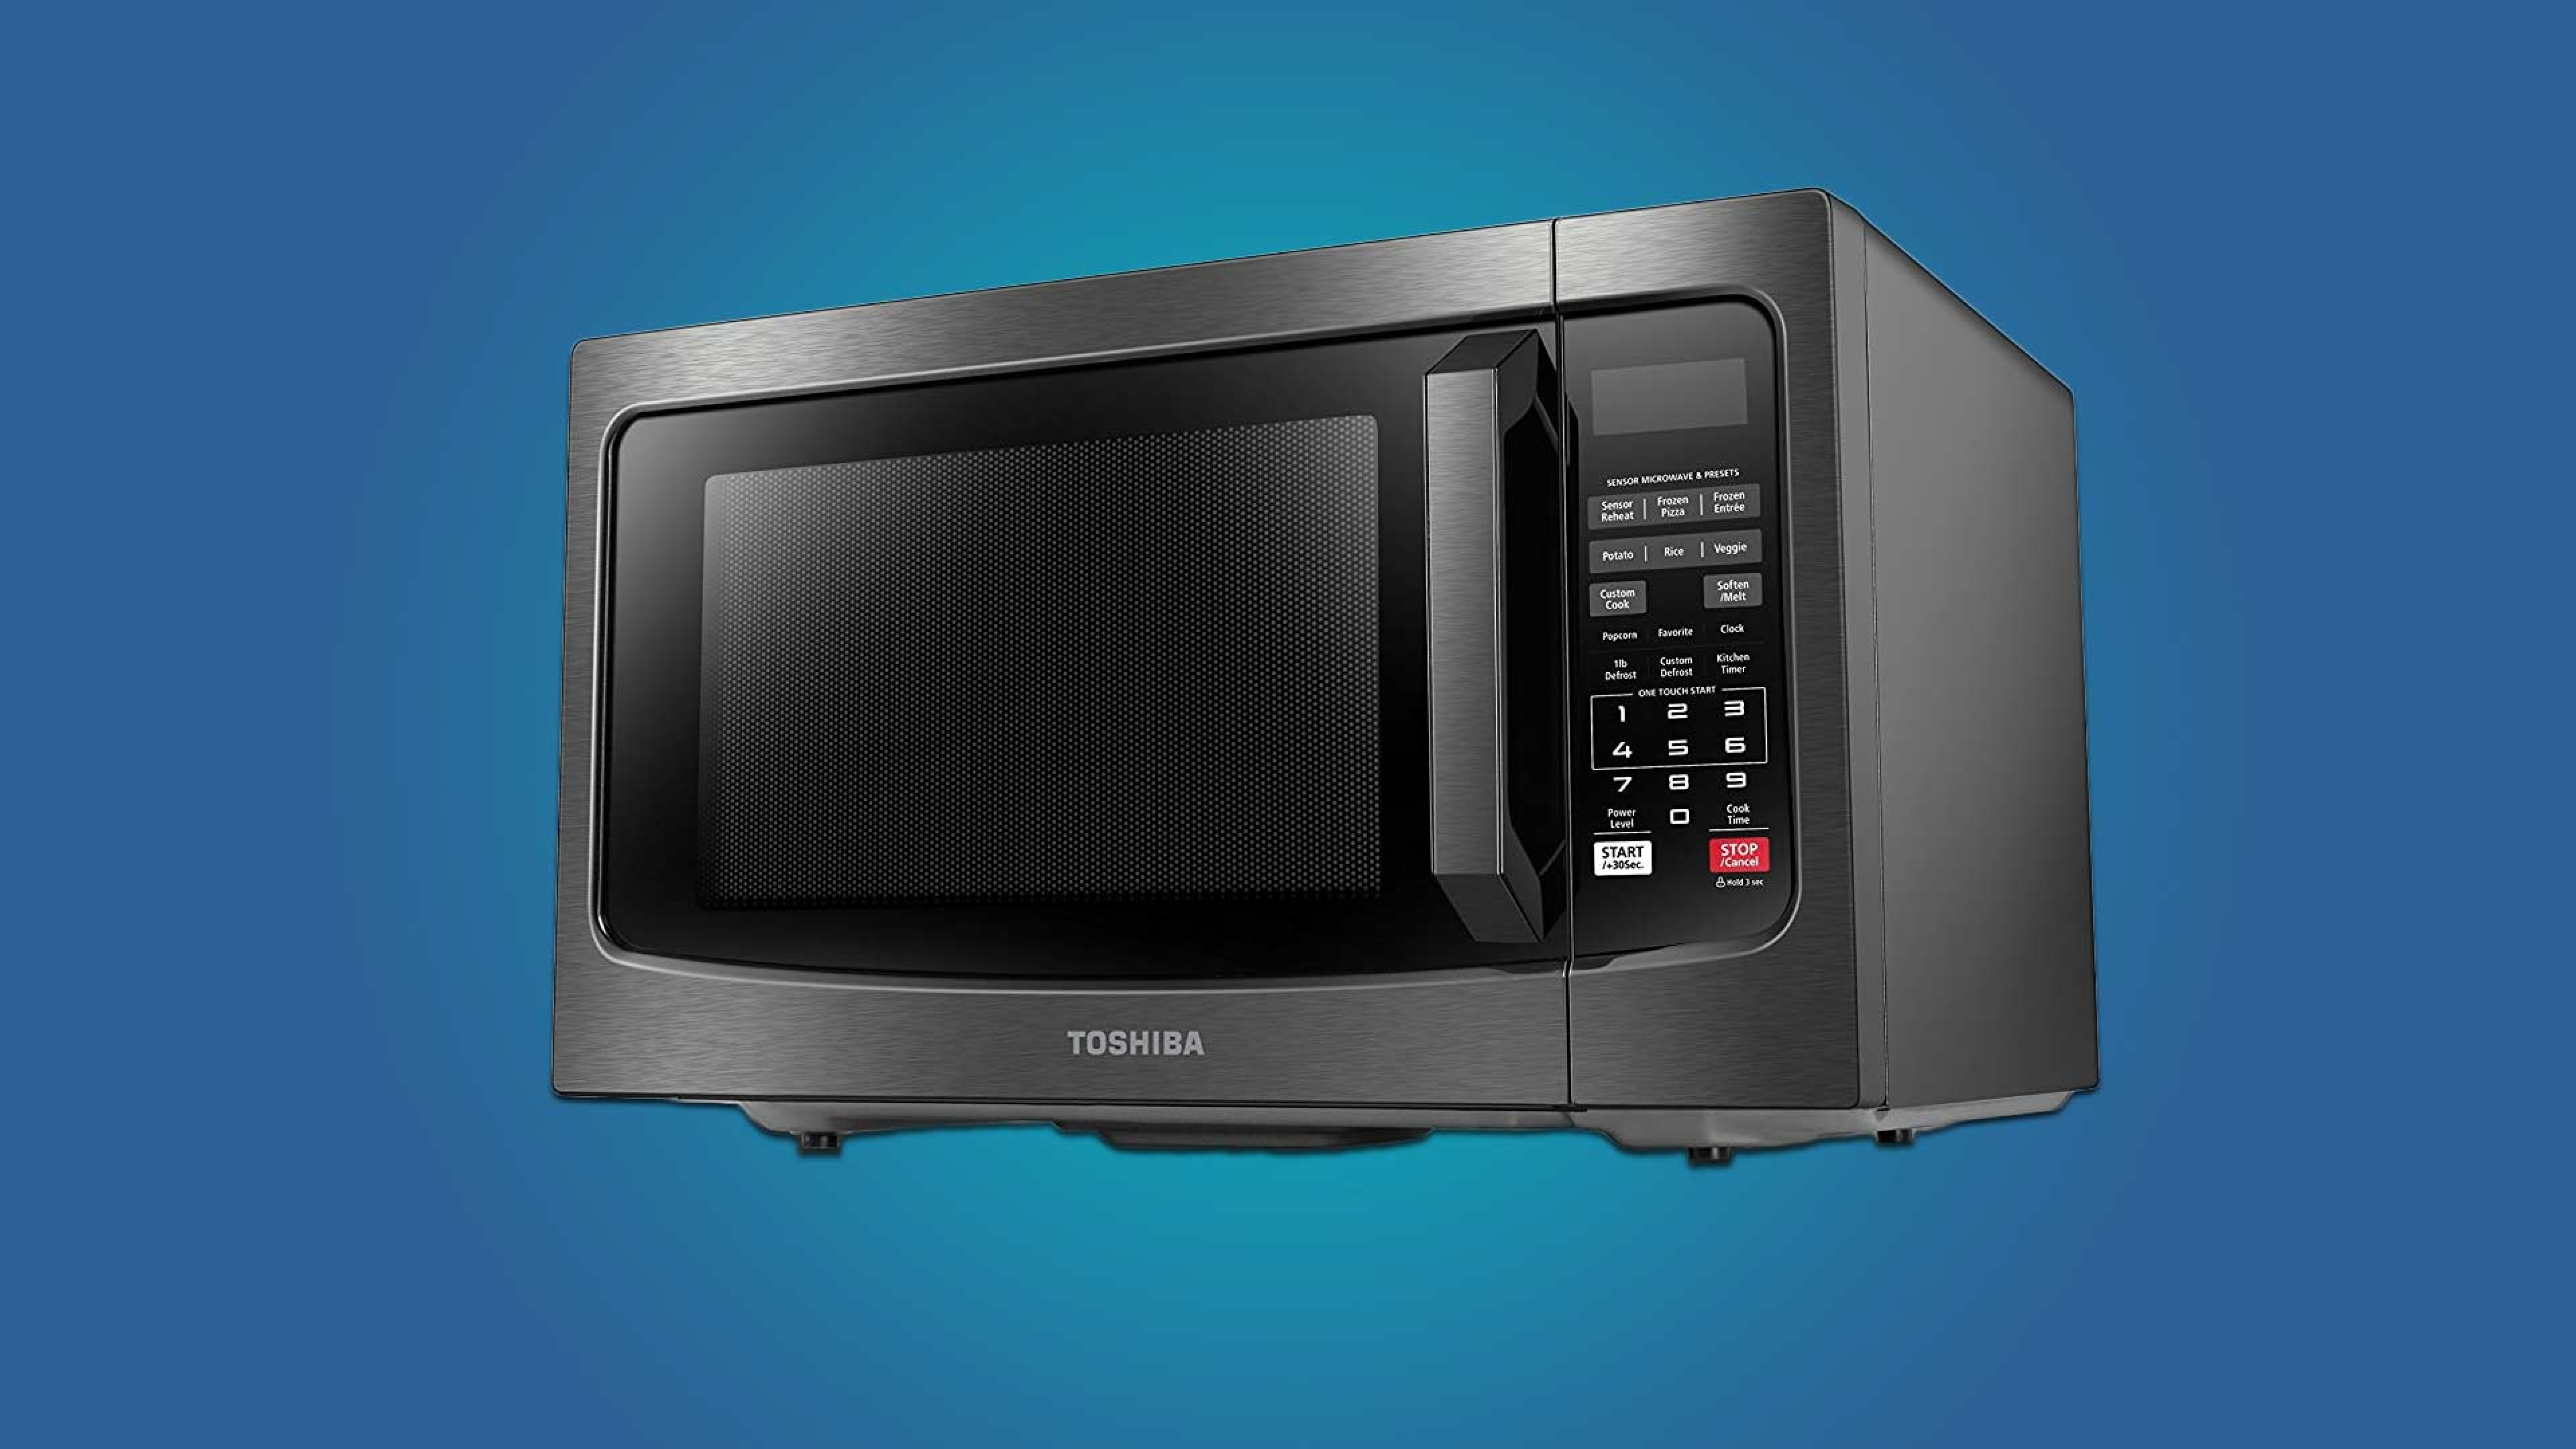 15 Inch High Over The Range Microwave – BestMicrowave |Best Rated Microwave Ovens